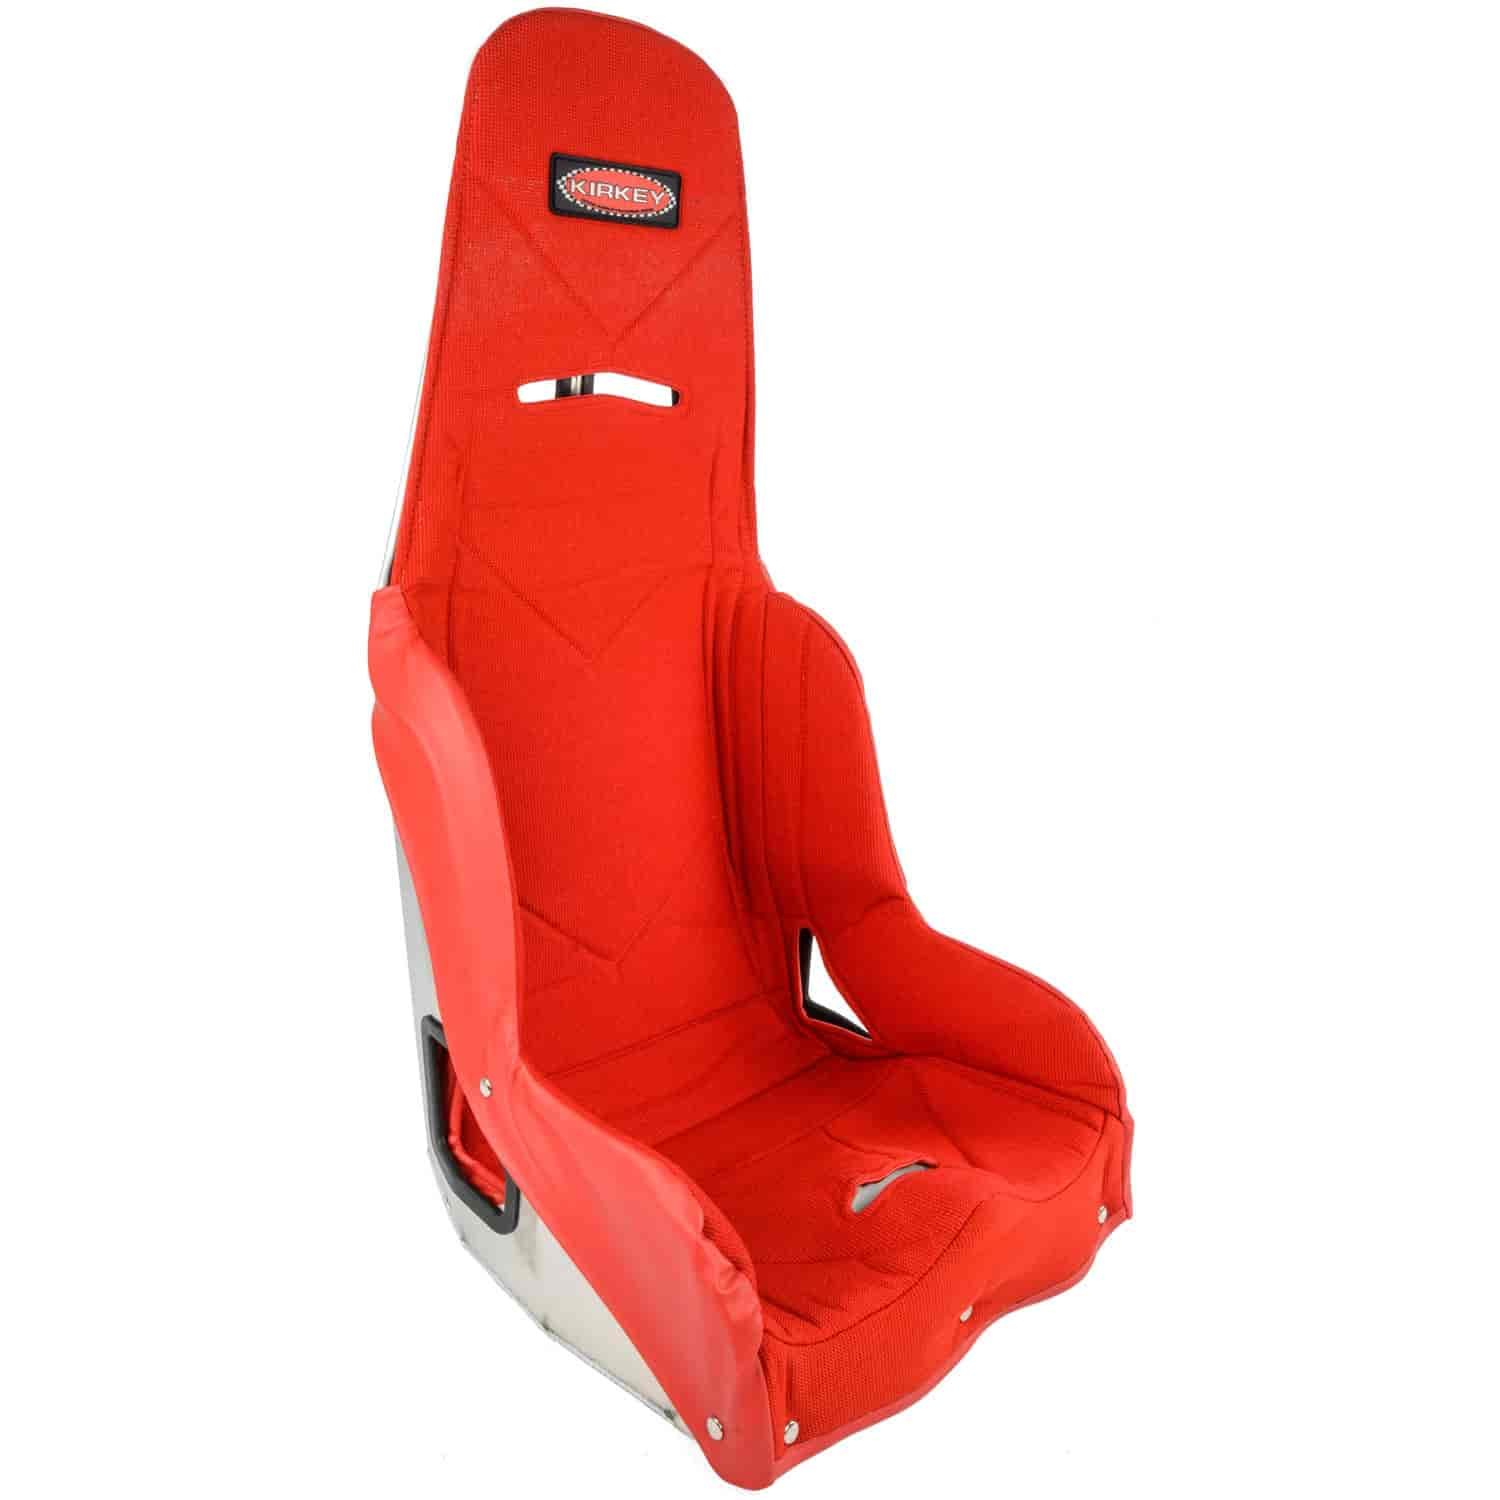 Kirkey 41912 - Kirkey Aluminum Pro Street Drag Racing Seats